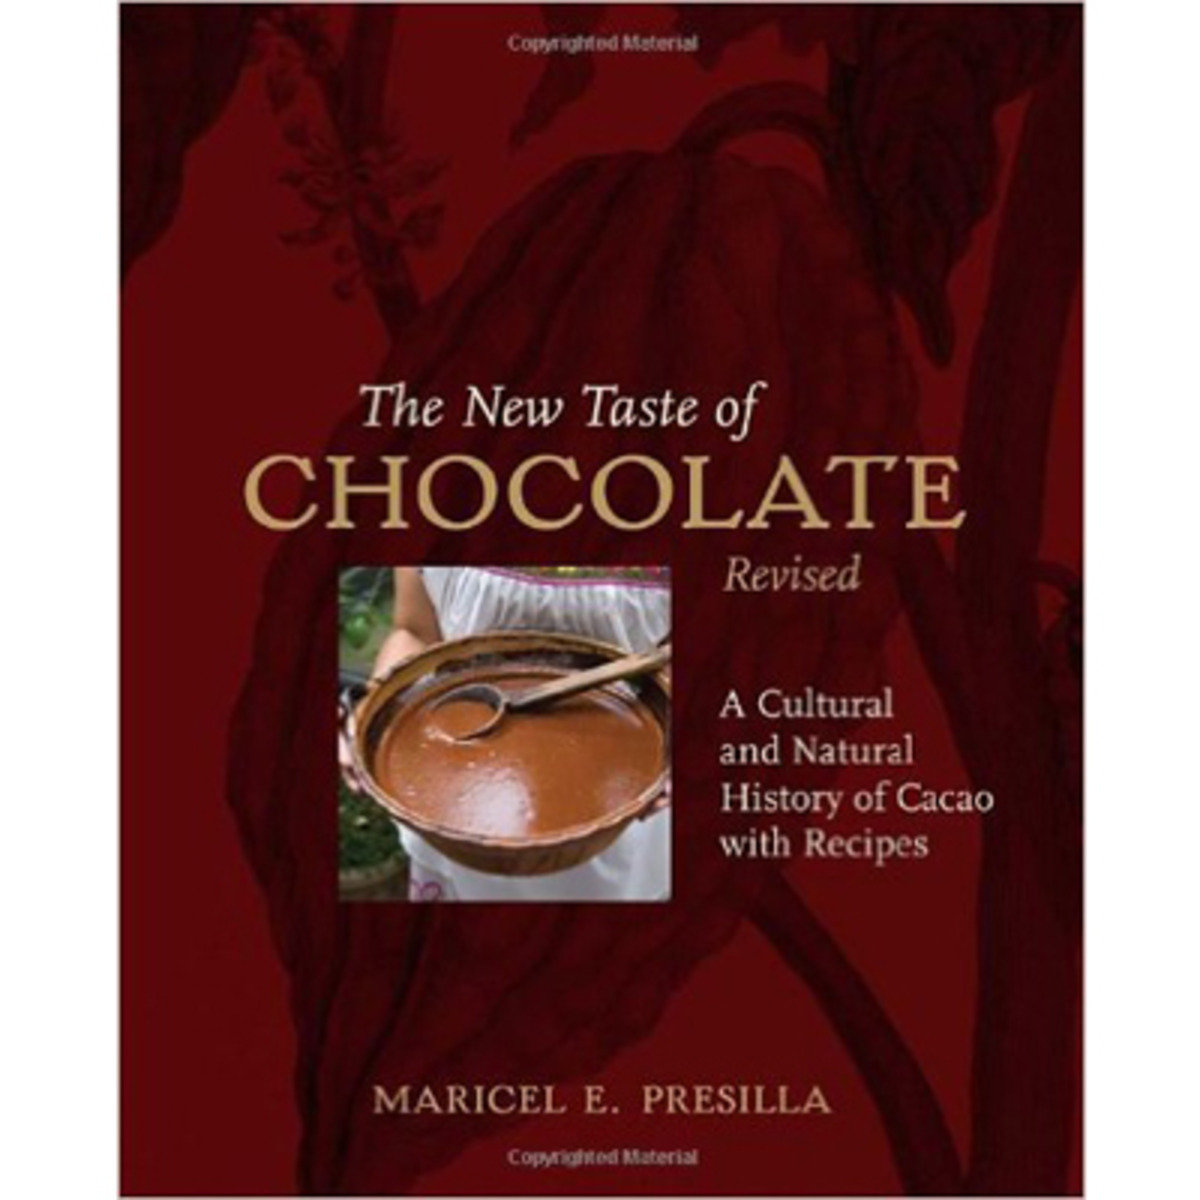 NEW TASTE OF CHOCOLATE: A Cultural and Natural History of Cacao With Recipes 9781580089500